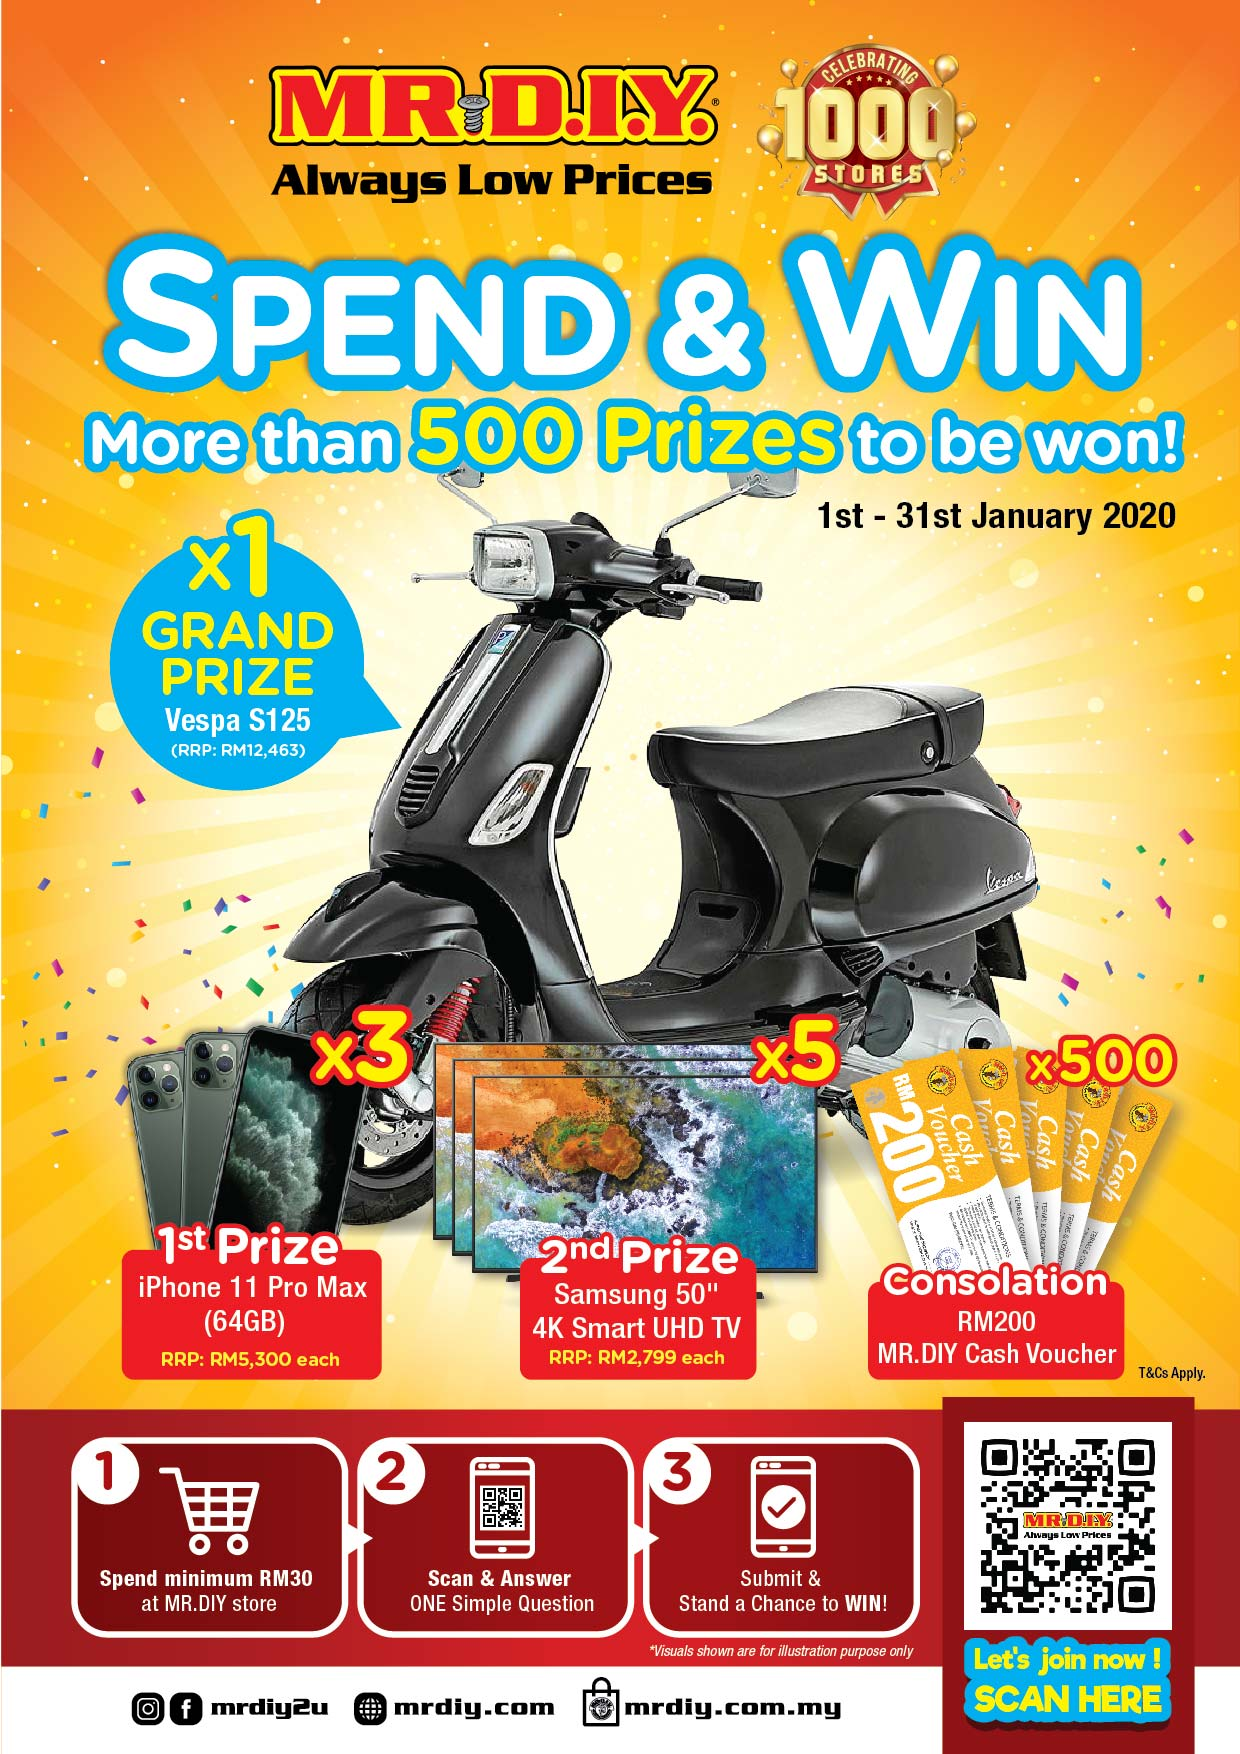 Join MR D.I.Y Spend & Win Contest